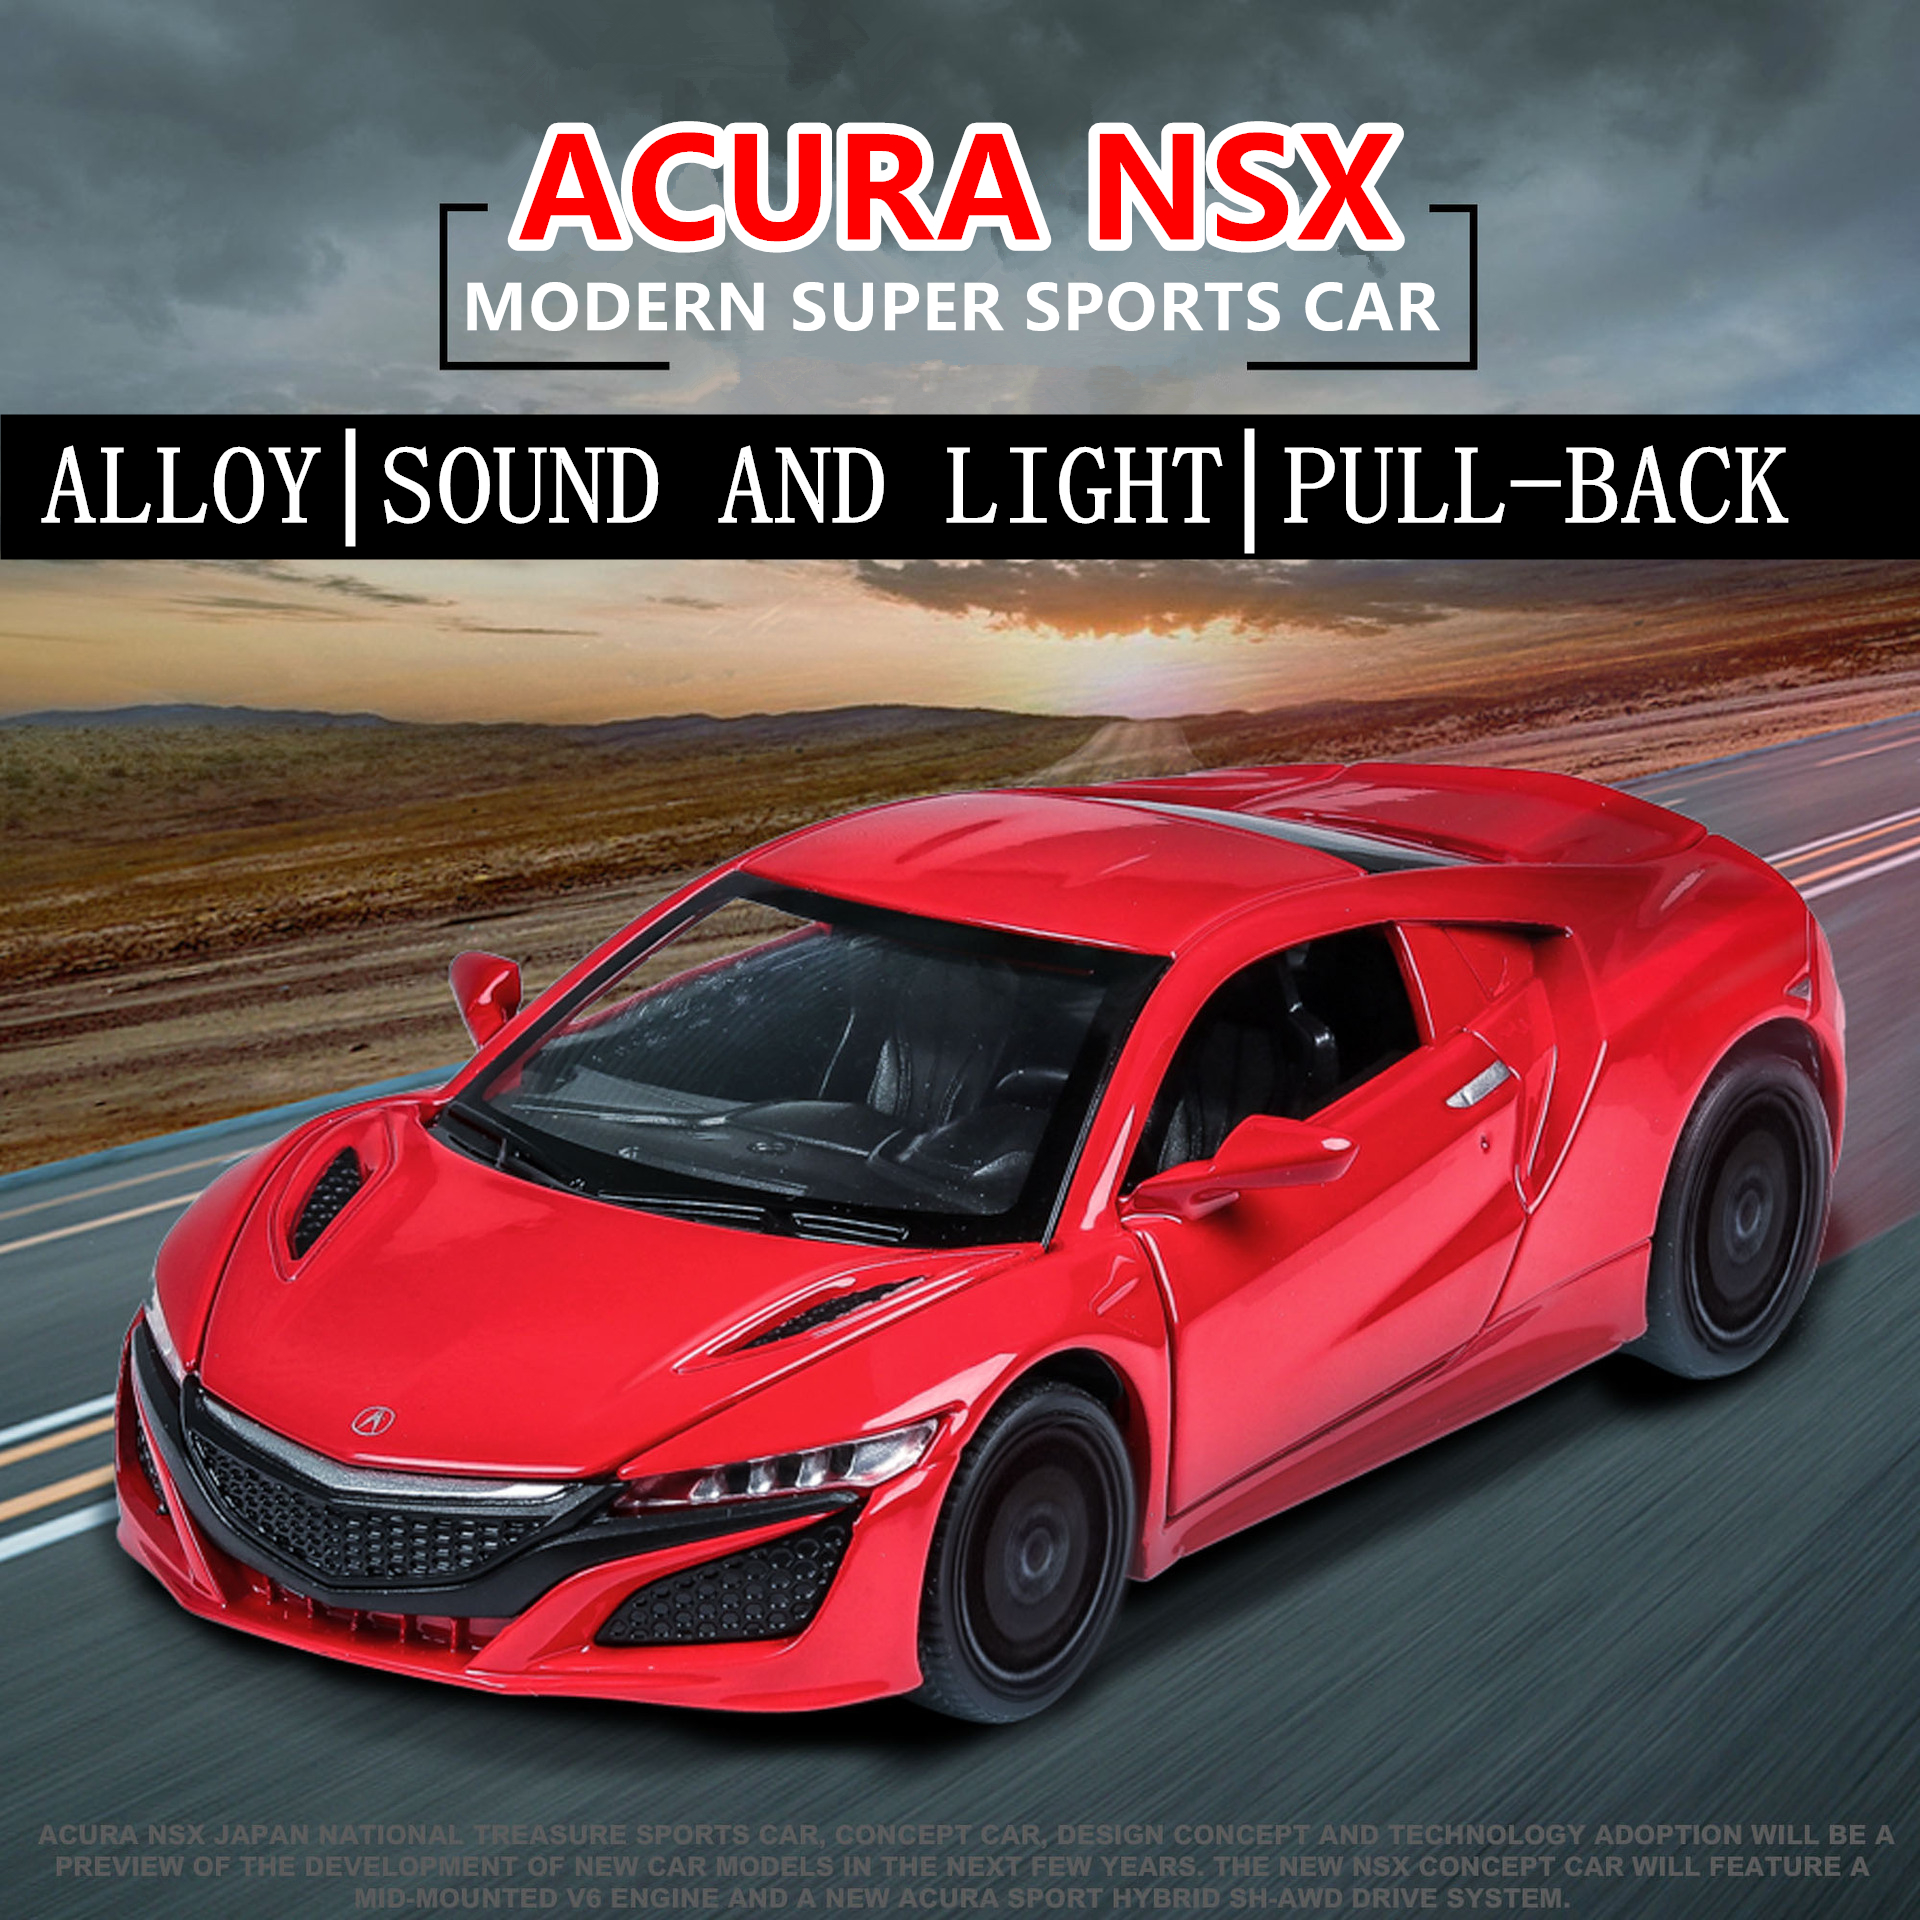 1 32 Honda Acura Nsx Sound And Light Door Open Alloy Children S Toy Car Model Collection Gift Pull Back Vehicle Diecasts Toy Vehicles Aliexpress